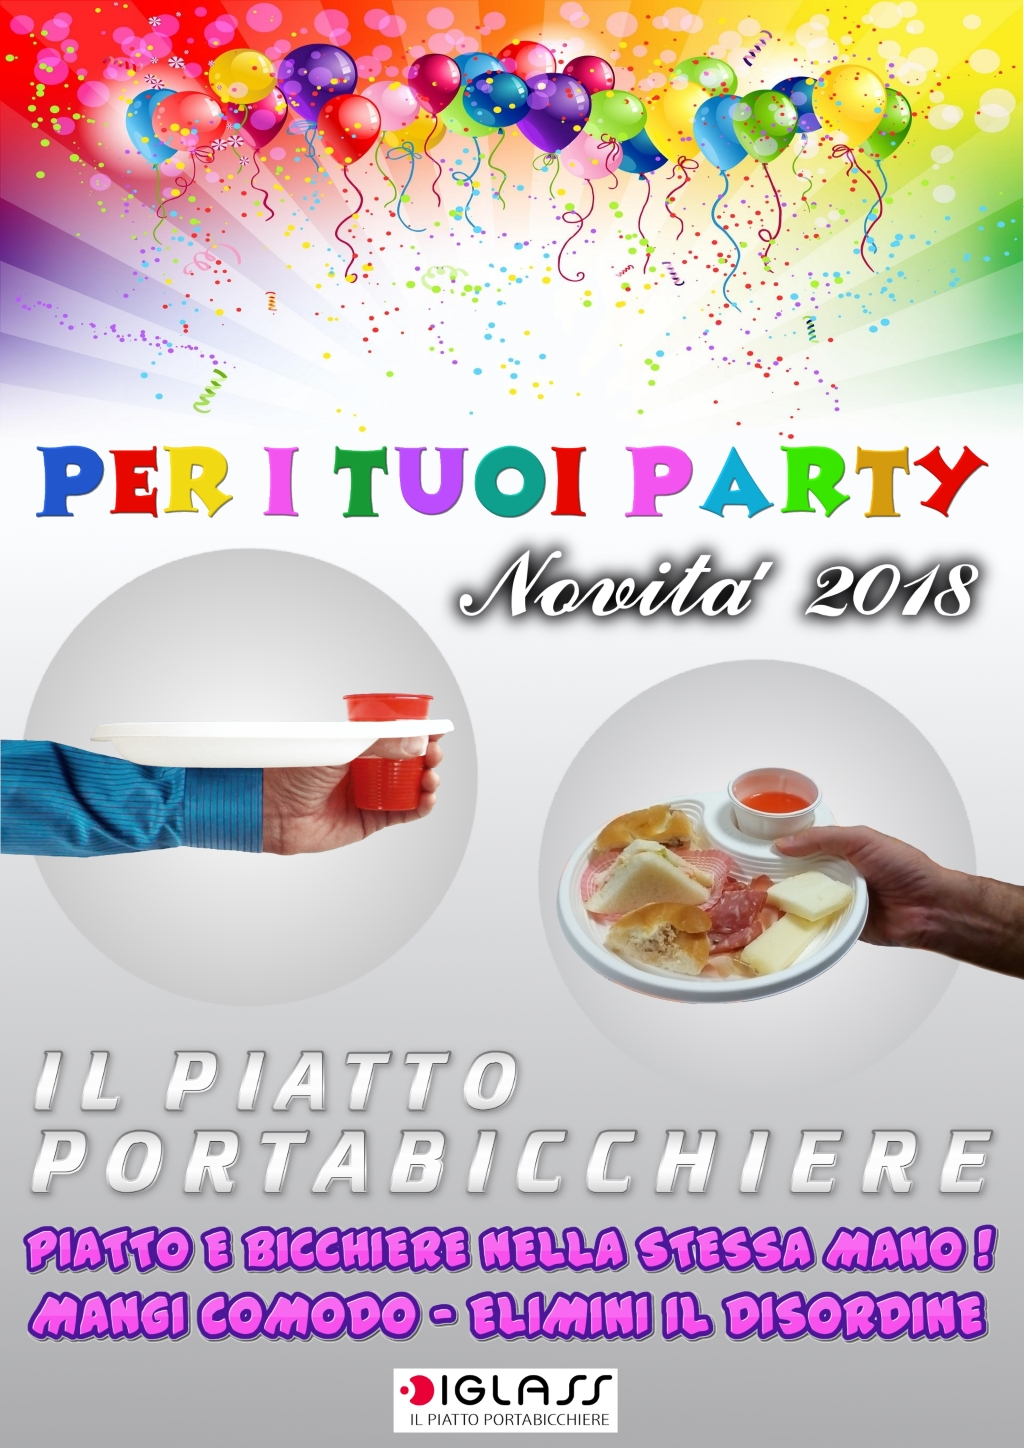 Feste, party, Feste di compleanno, buffet